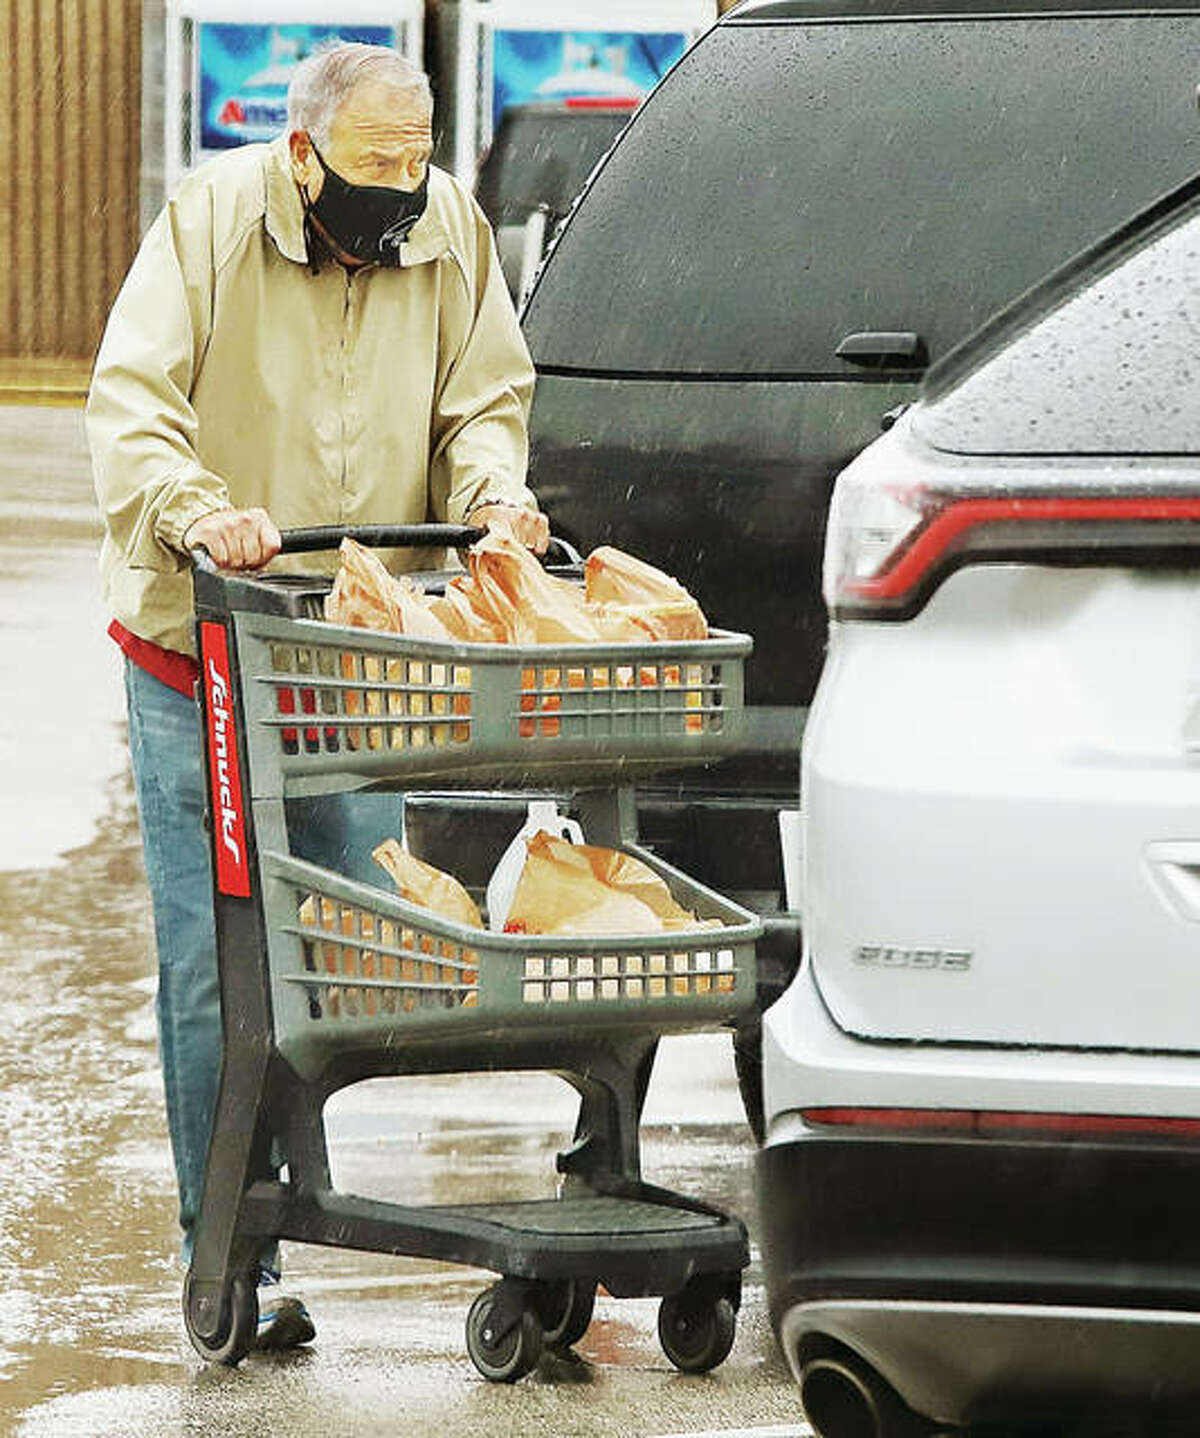 A man, properly wearing his face mask, heads to his car Monday with a cart full of groceries from the Schnucks store in Godfrey. It probably wasn't a bad idea to get groceries since the state will again ban service at indoor restaurants and bars in Madison County starting Wednesday.